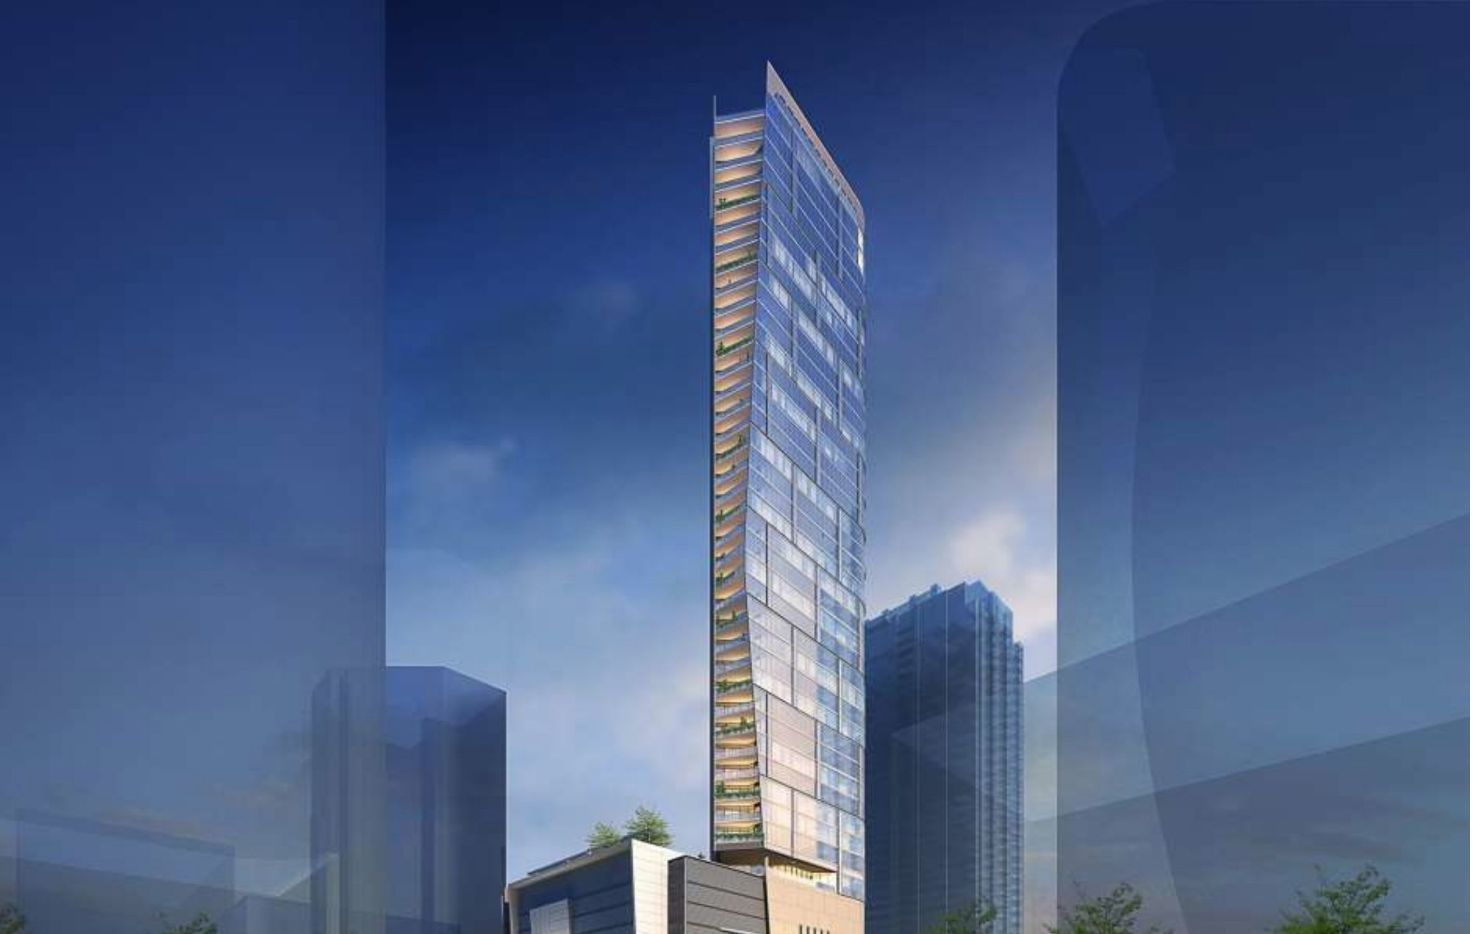 Hines' new Preston tower in downtown Houston will be 46 stories tall